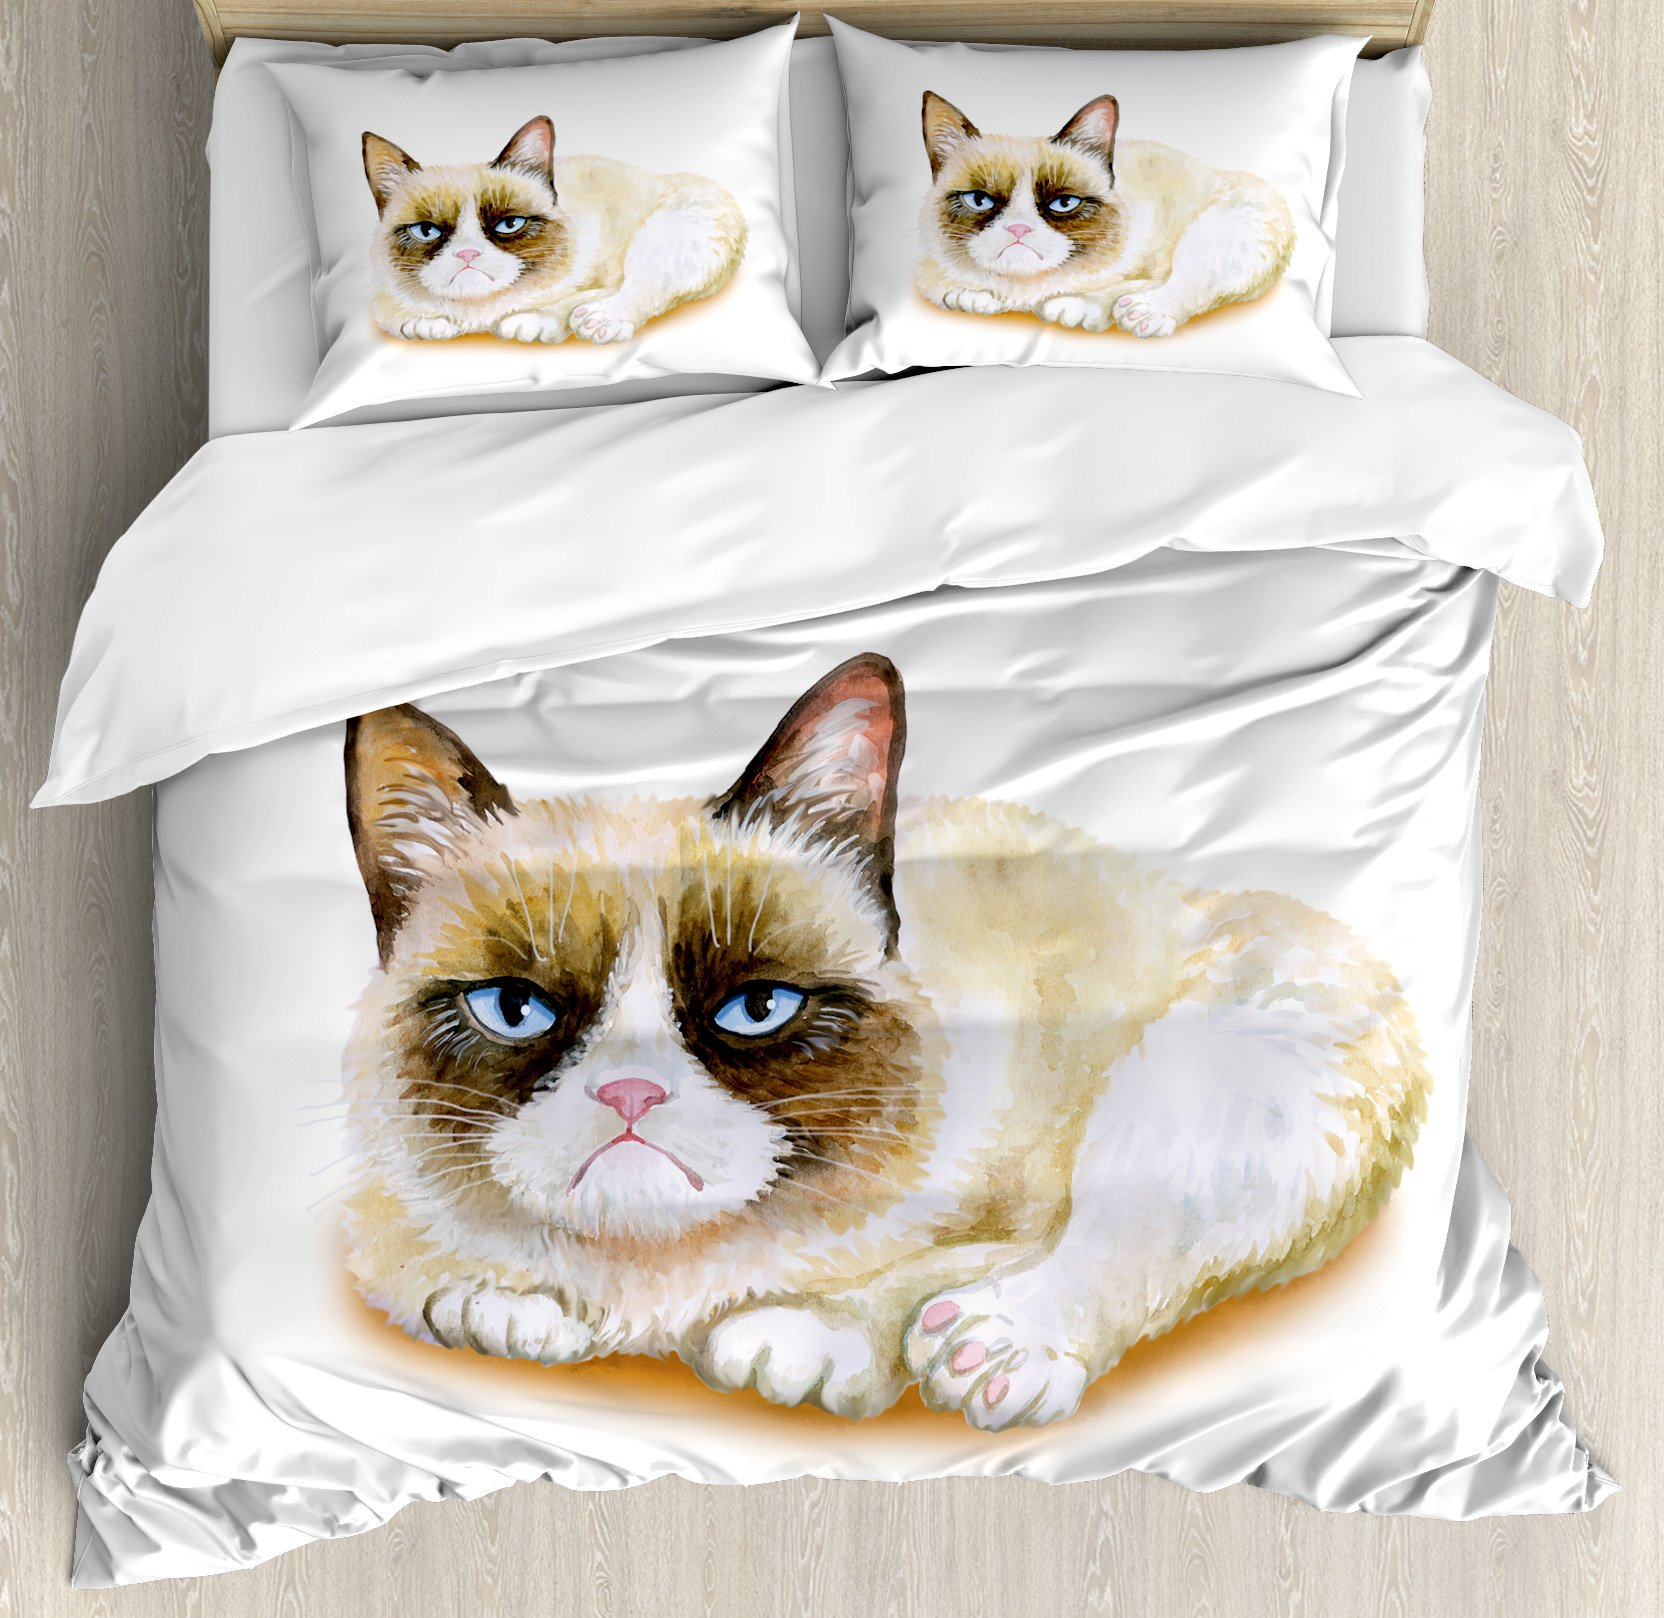 Animal Duvet Cover Set by Ambesonne, Grumpy Siamese Cat Angry Paws Asian Kitten Moody Feline Fluffy Love Art Print, 3 Piece Bedding Set with Pillow Shams, Queen / Full, Brown and Beige